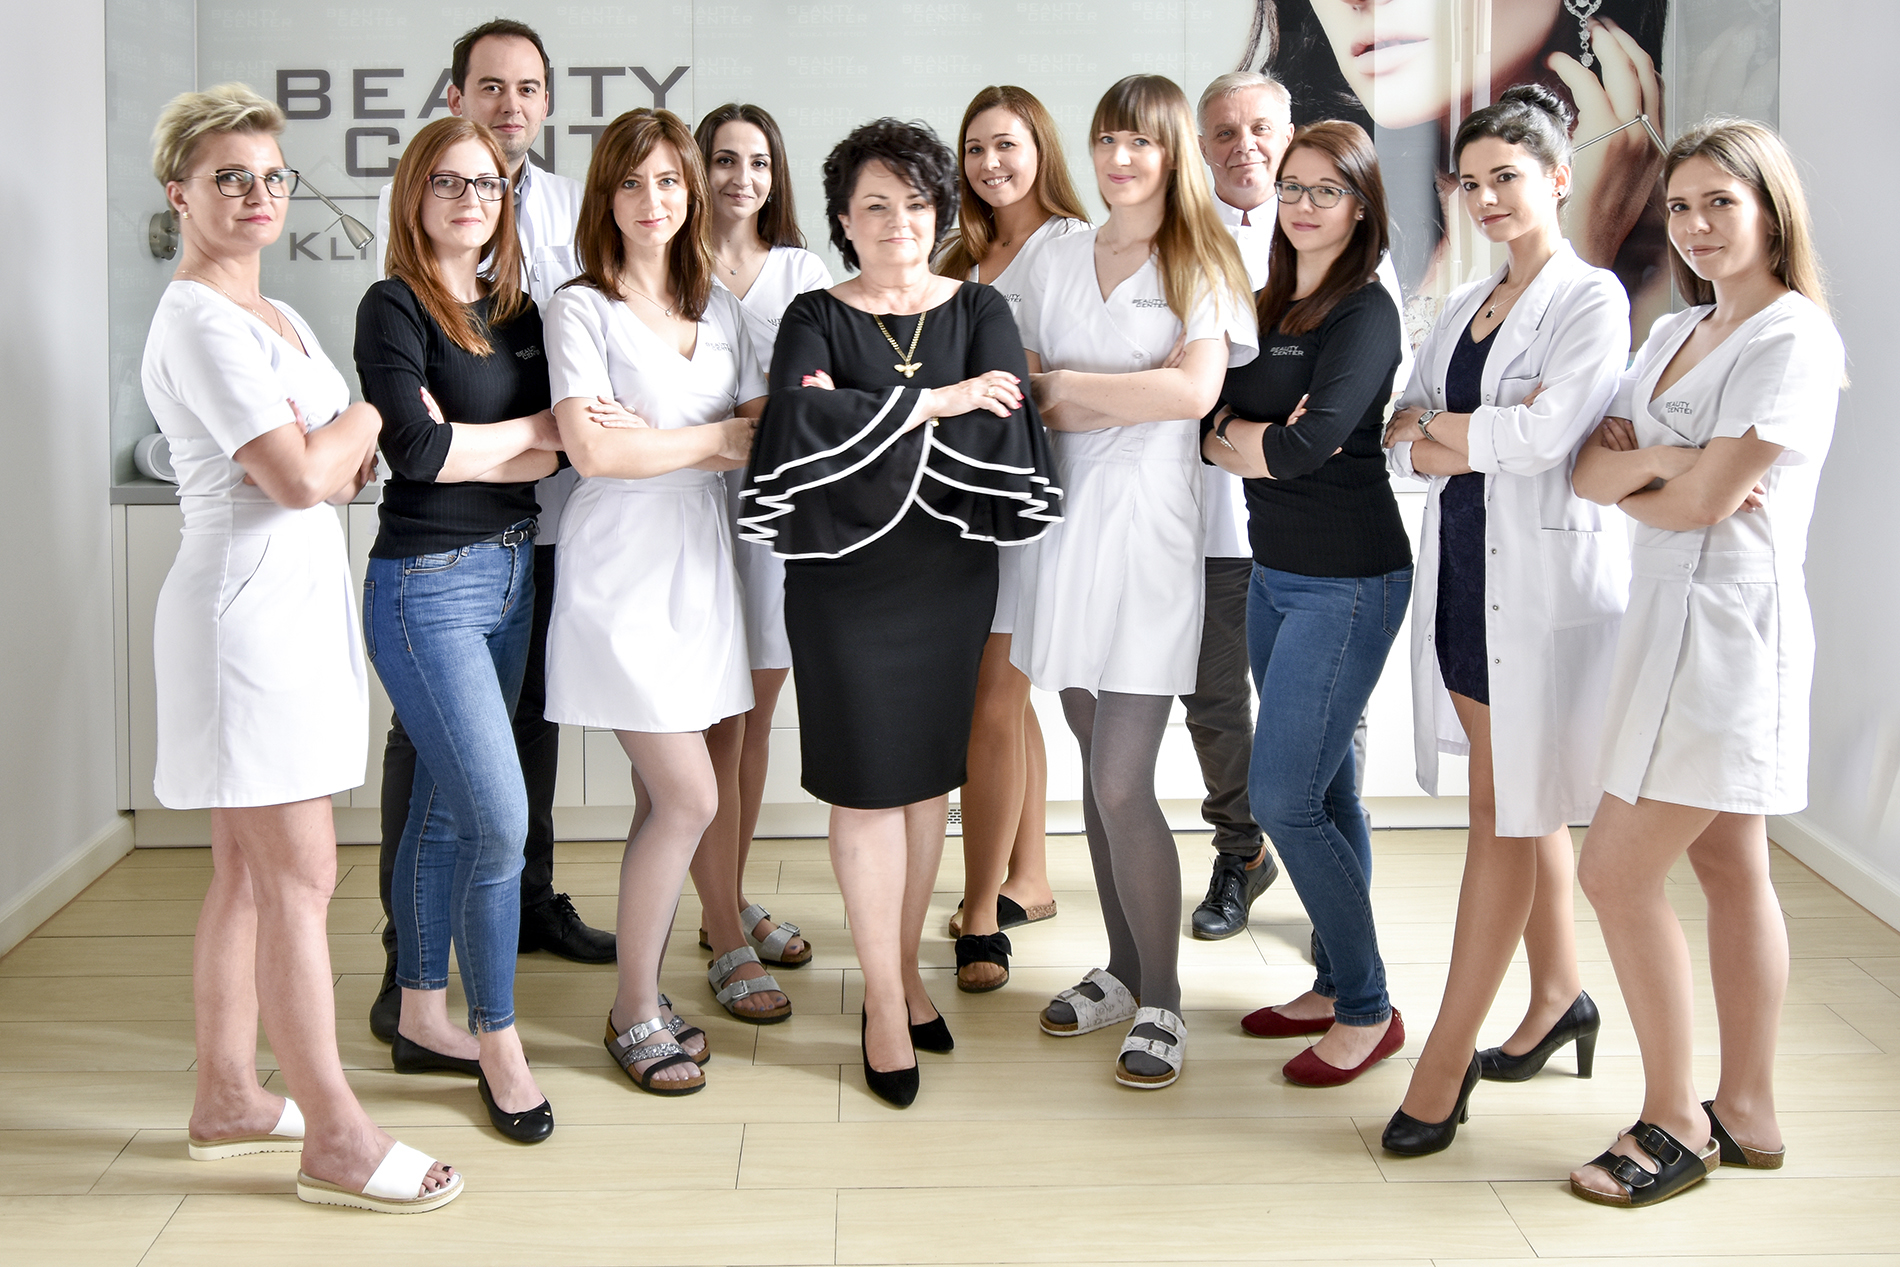 Grupowe zdjęcie Beauty Center Medical Wellness SPA z Pabianic 2019